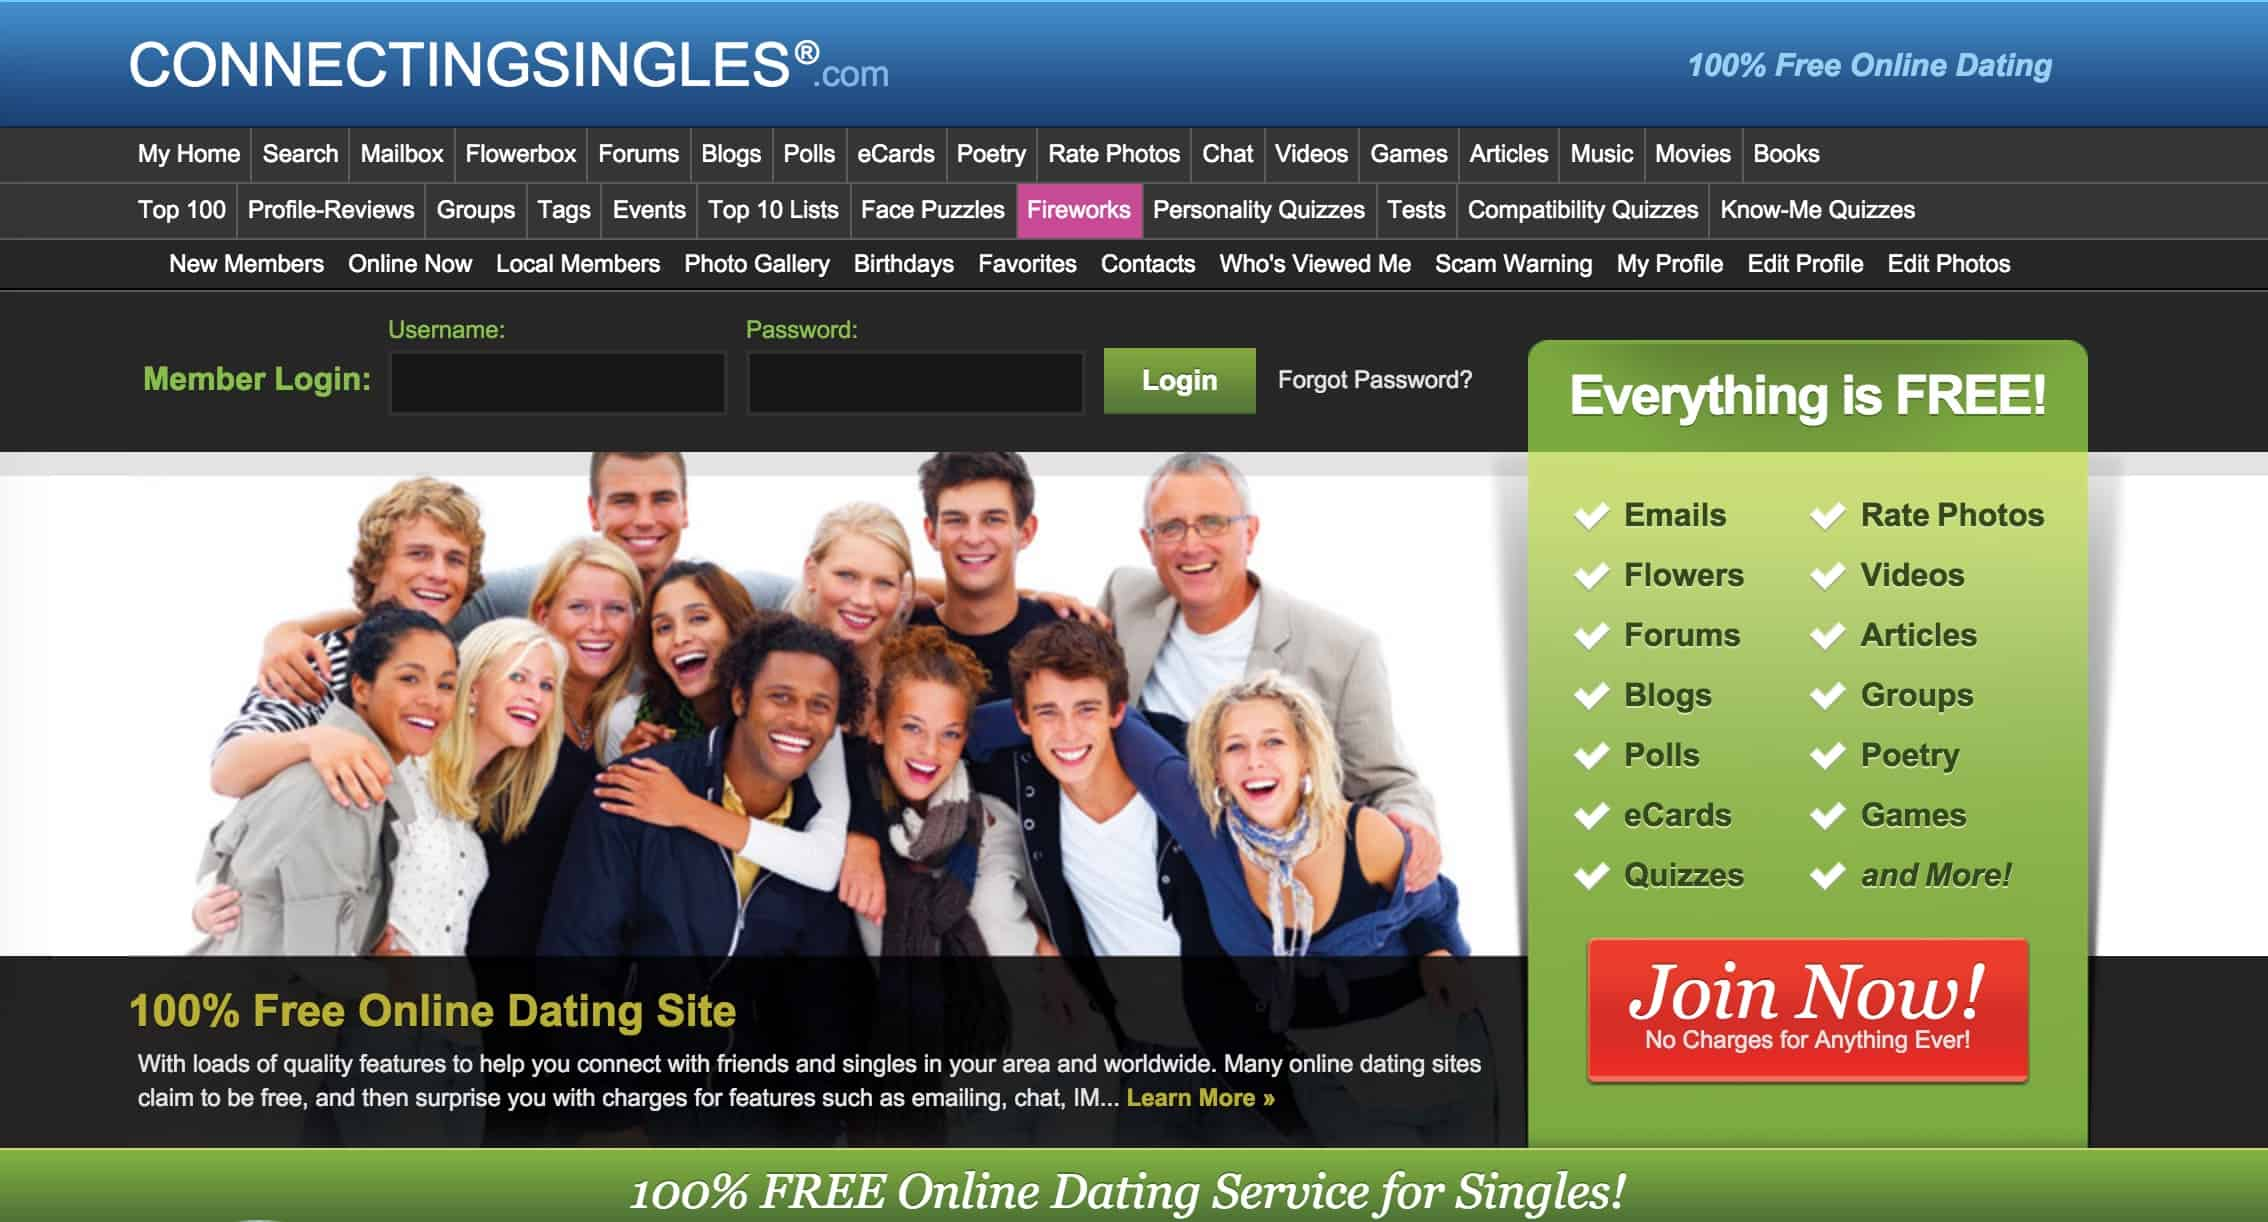 100% free online dating in plain 100% free online dating site for singles of all races and interests to find available singles to flirt, date, fall in love, and create relationships.